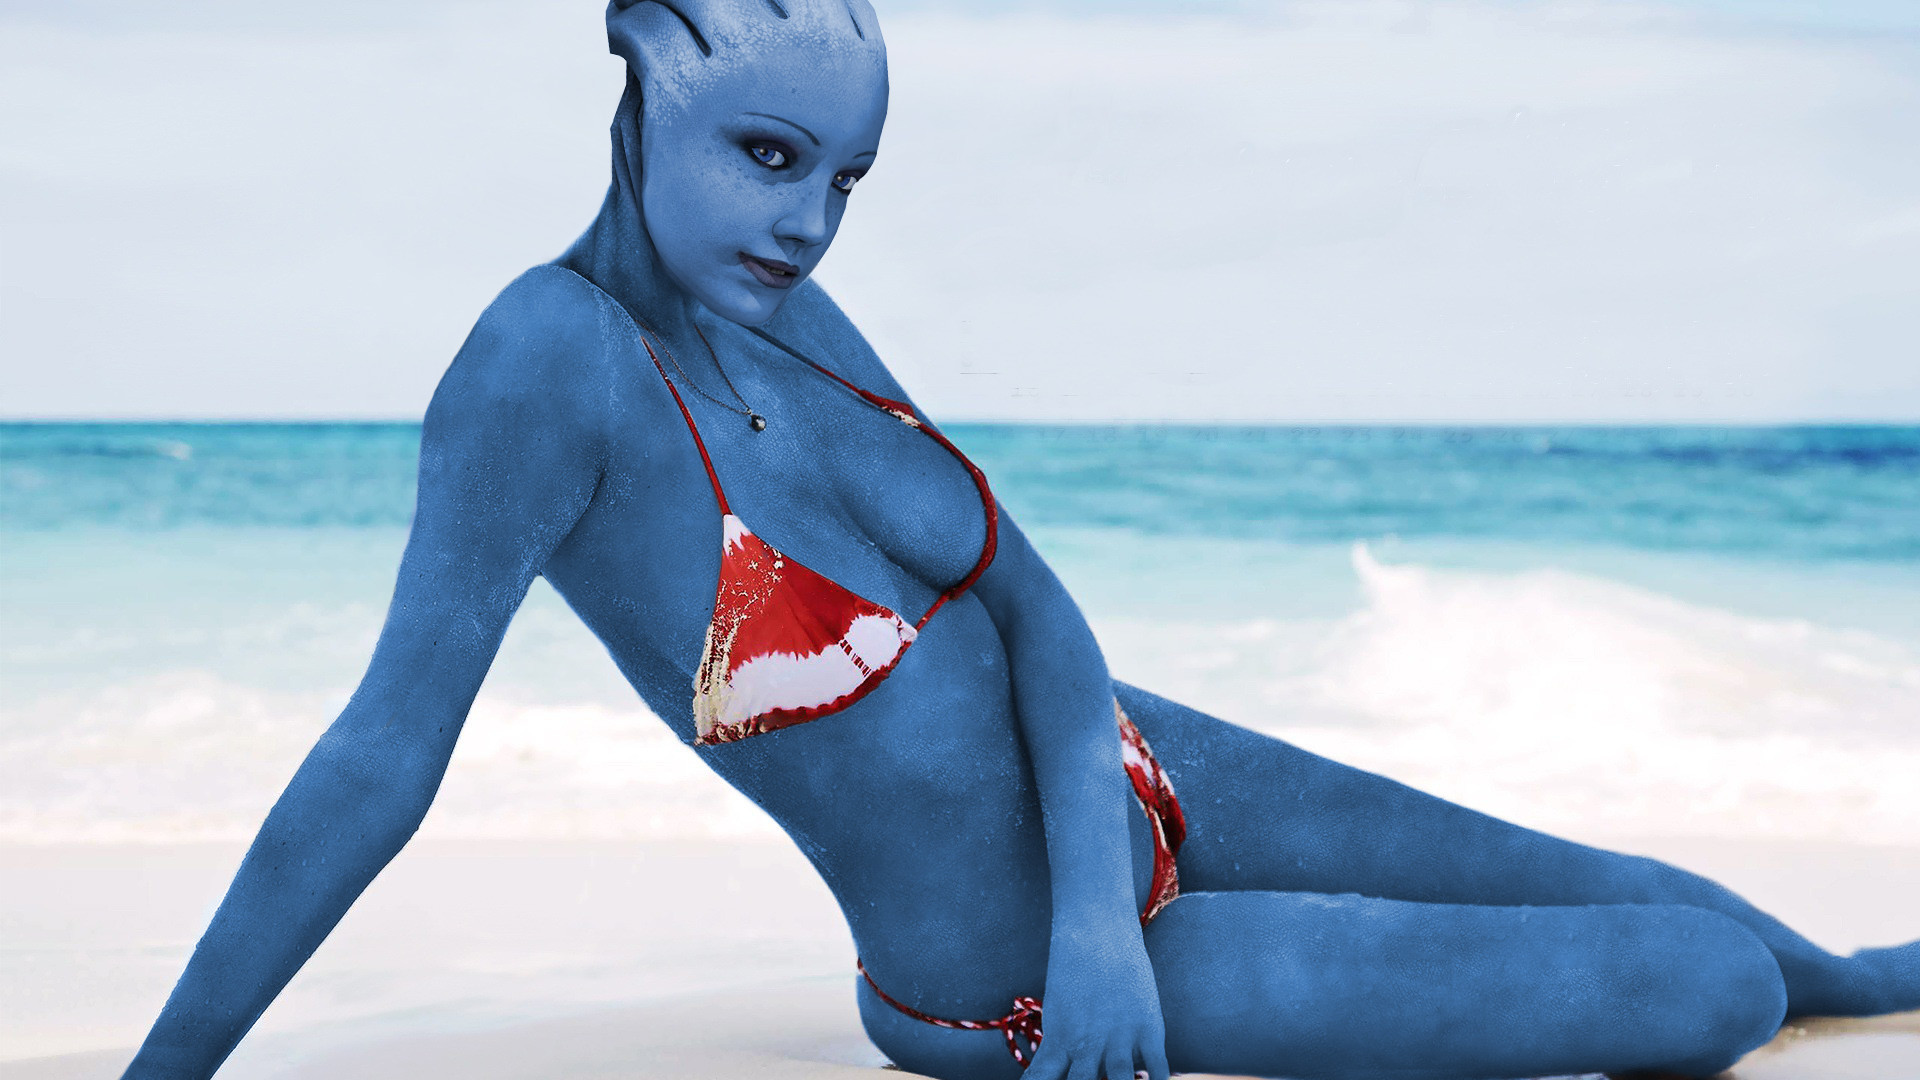 1920x1080 Add media Report RSS Real Life Liara in a Bikini Wallpaper (view original)